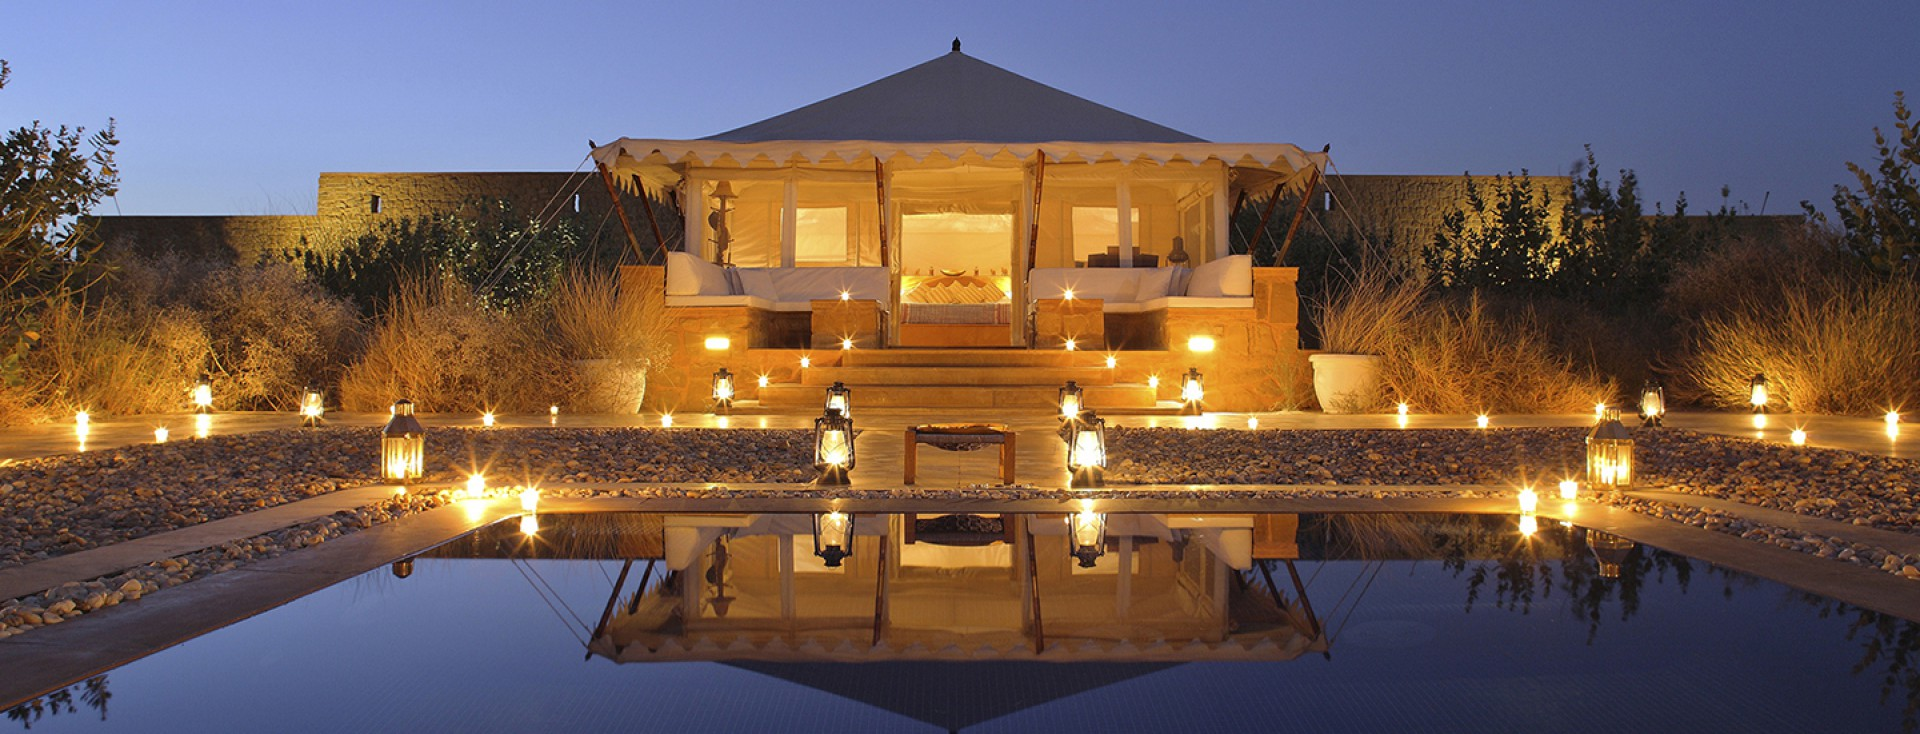 The Serai, Jaisalmer